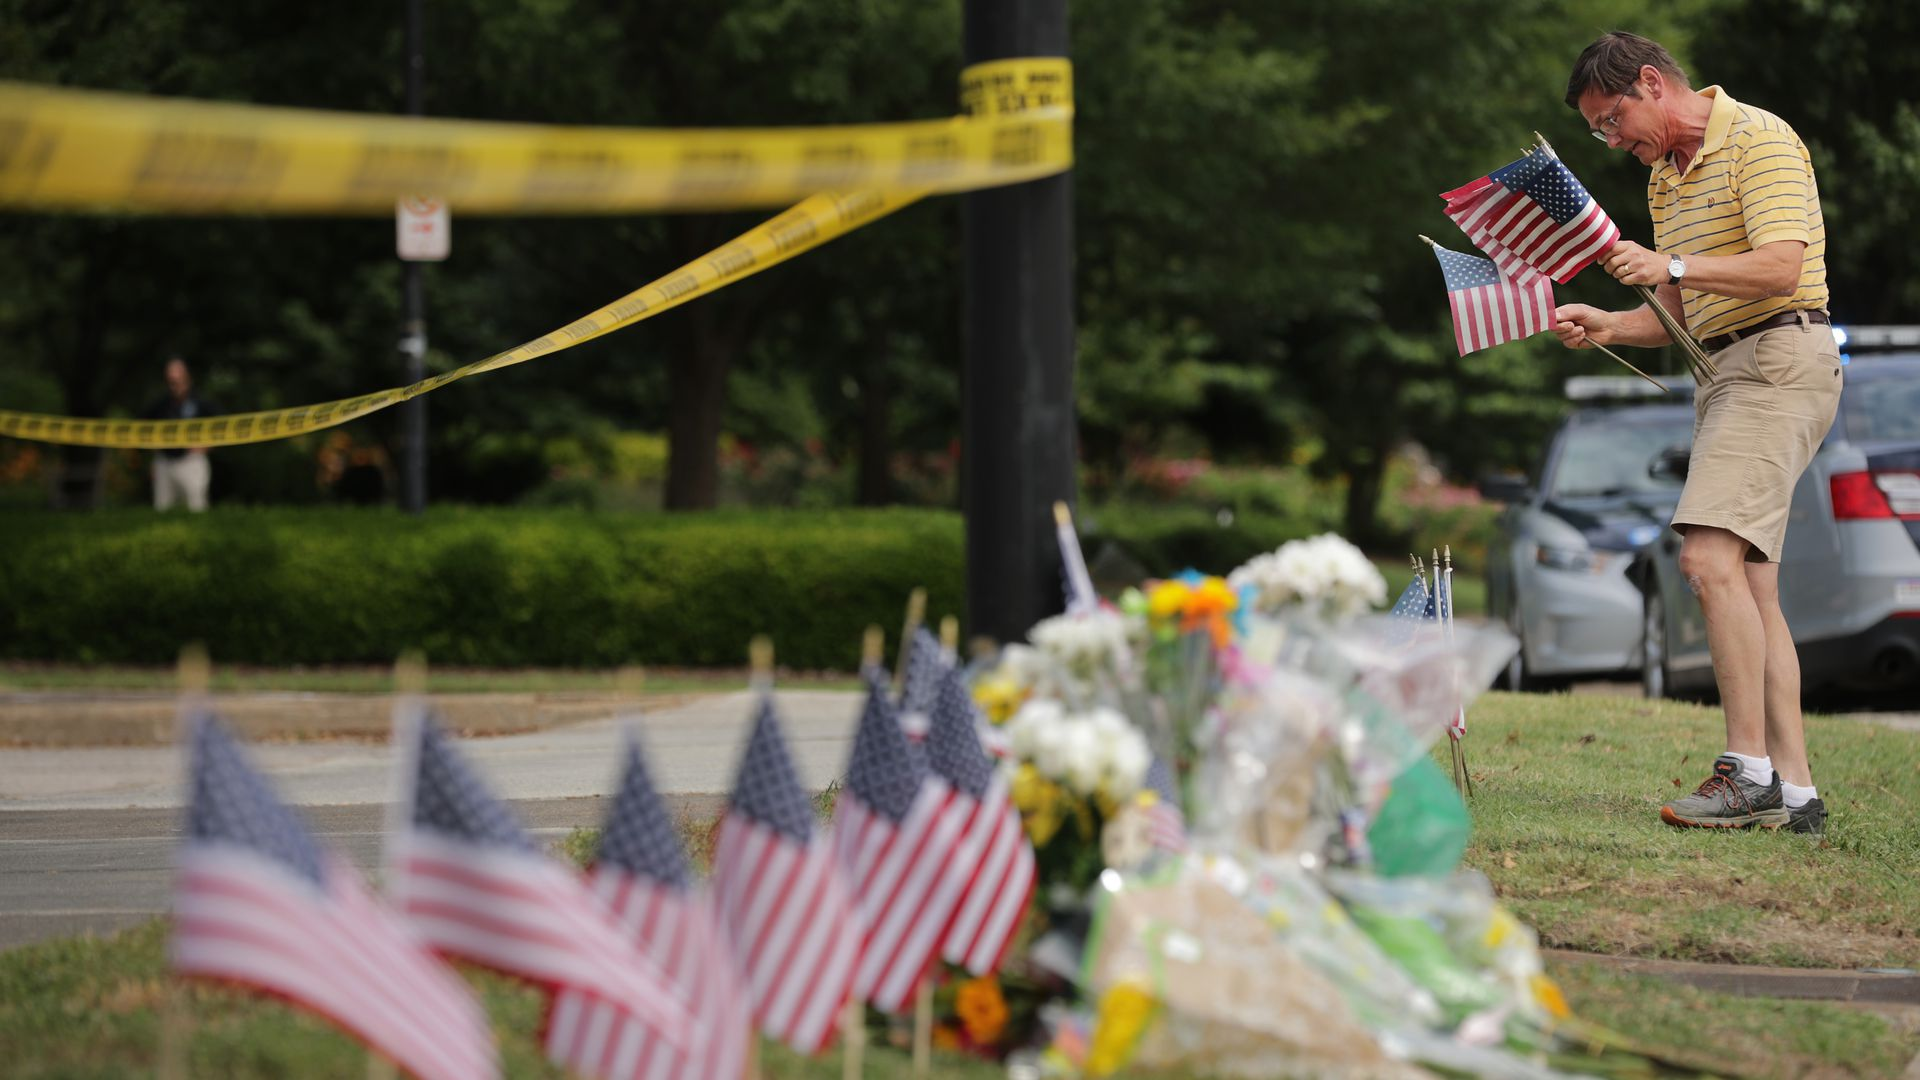 Rich Lindgren places 12 U.S. flags in the ground at a makeshif memorial outside of the crime scene at the Virginia Beach Municipal Center June 01, 2019 in Virginia Beach, Virginia.